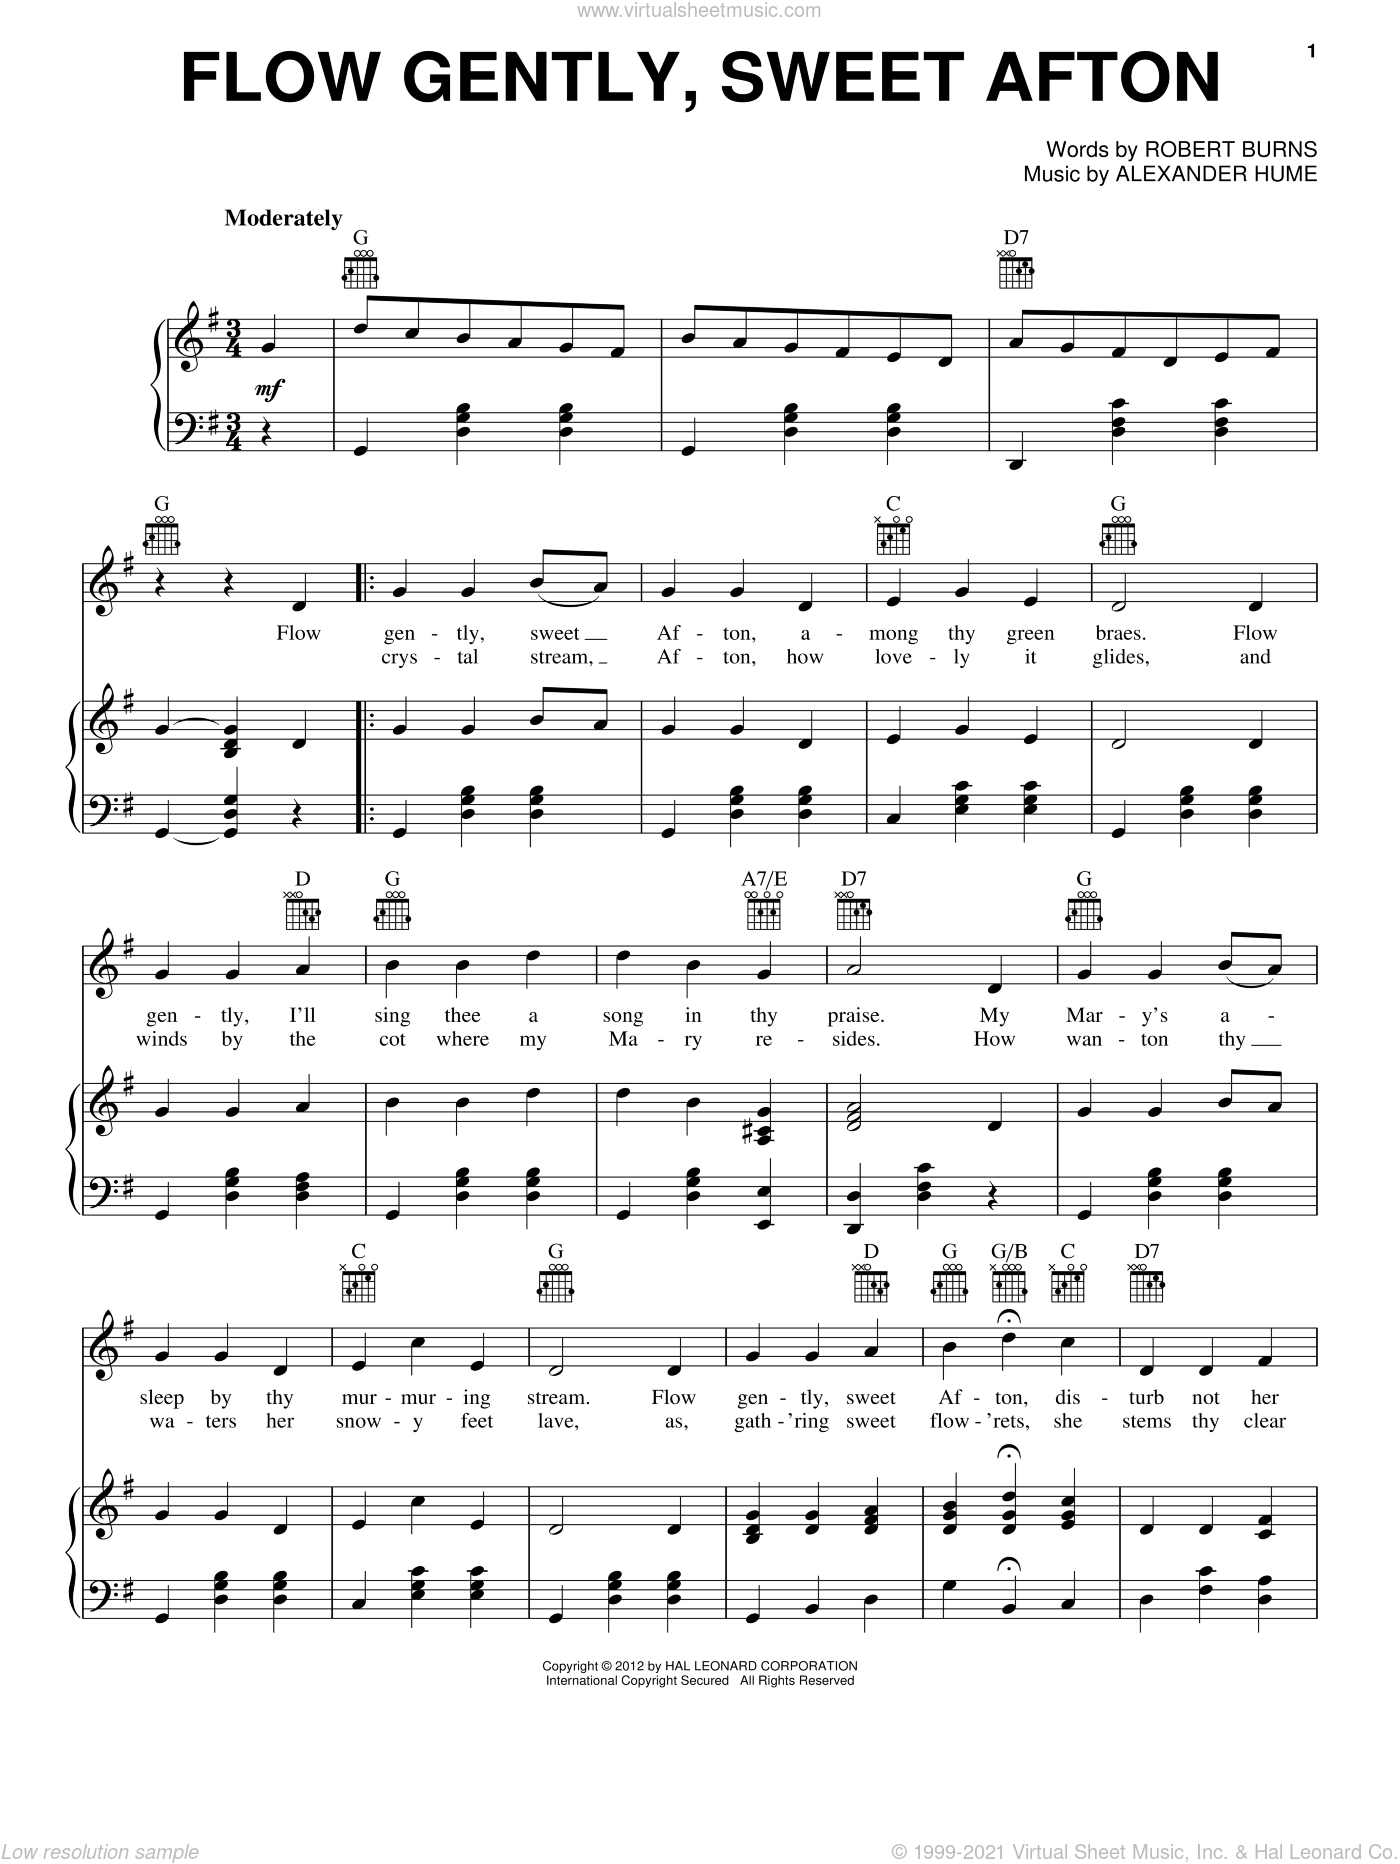 Flow Gently, Sweet Afton sheet music for voice, piano or guitar by Robert Burns and Alexander Hume, intermediate. Score Image Preview.